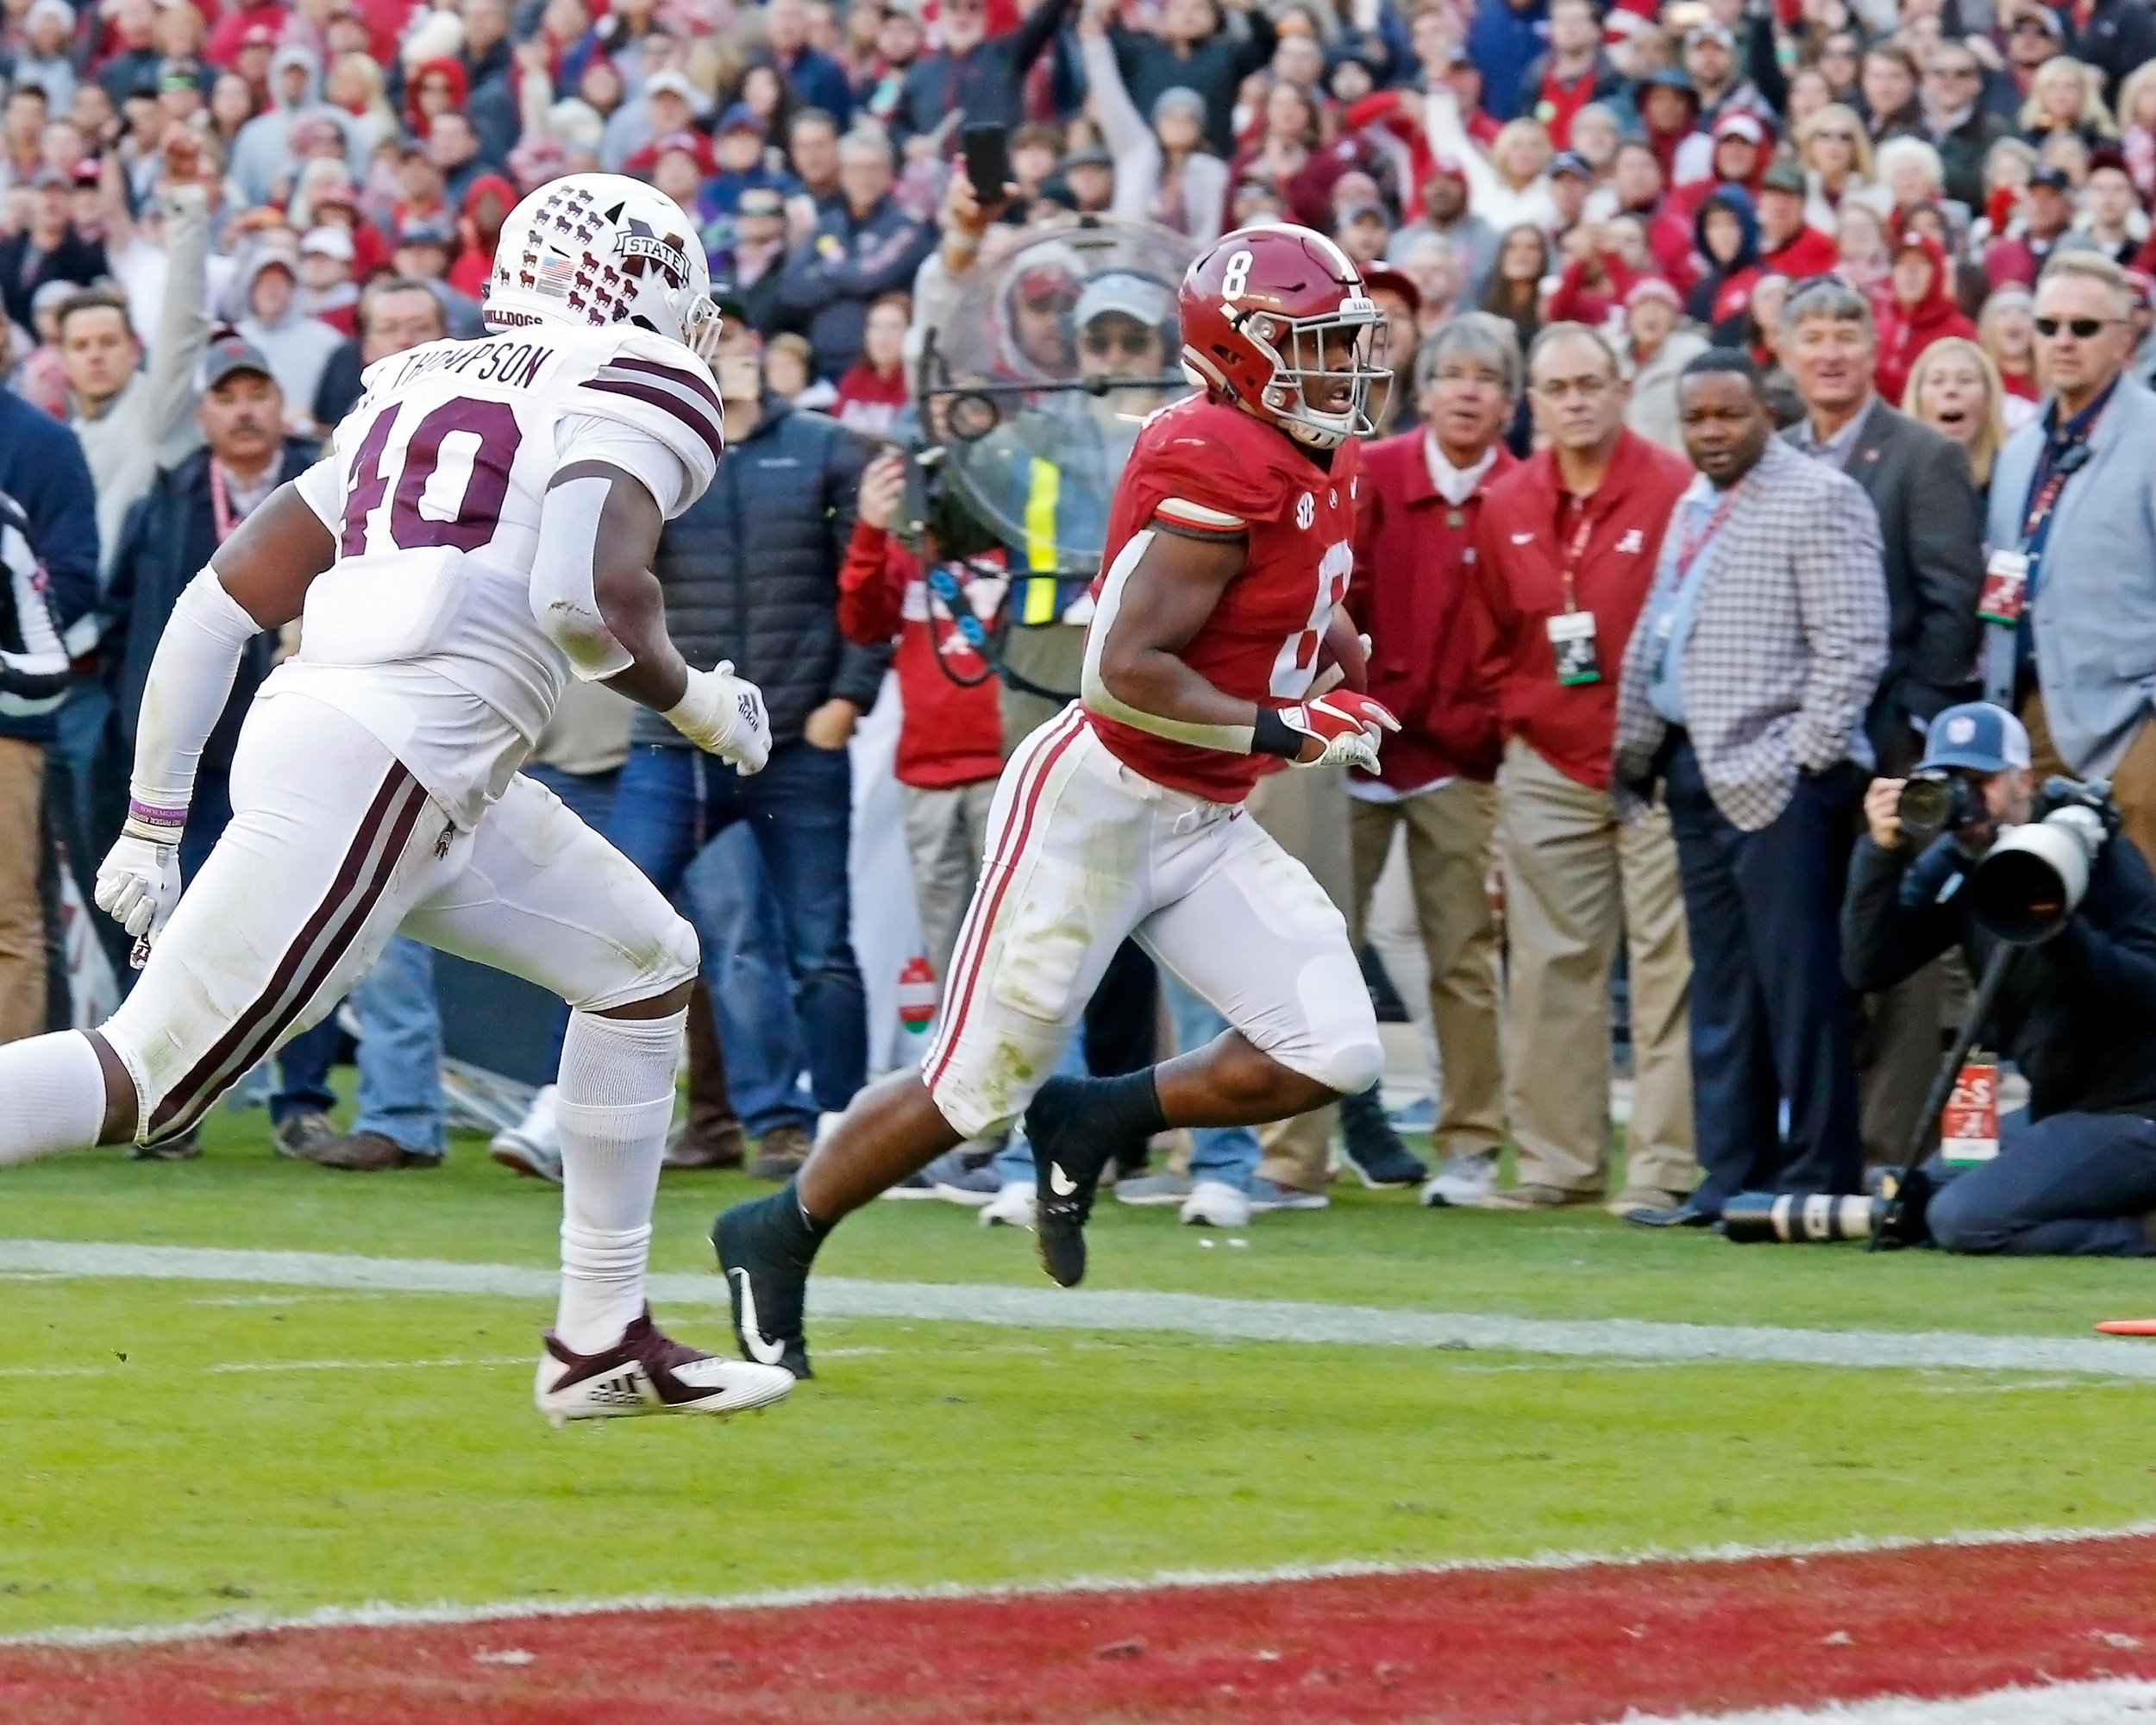 Alabama Crimson Tide running back Josh Jacobs (8) rushes for a touchdown during the game between Mississippi State and the University of Alabama at Bryant-Denny Stadium in Tuscaloosa, Al. Credit: Jason Clark / Daily Mountain Eagle